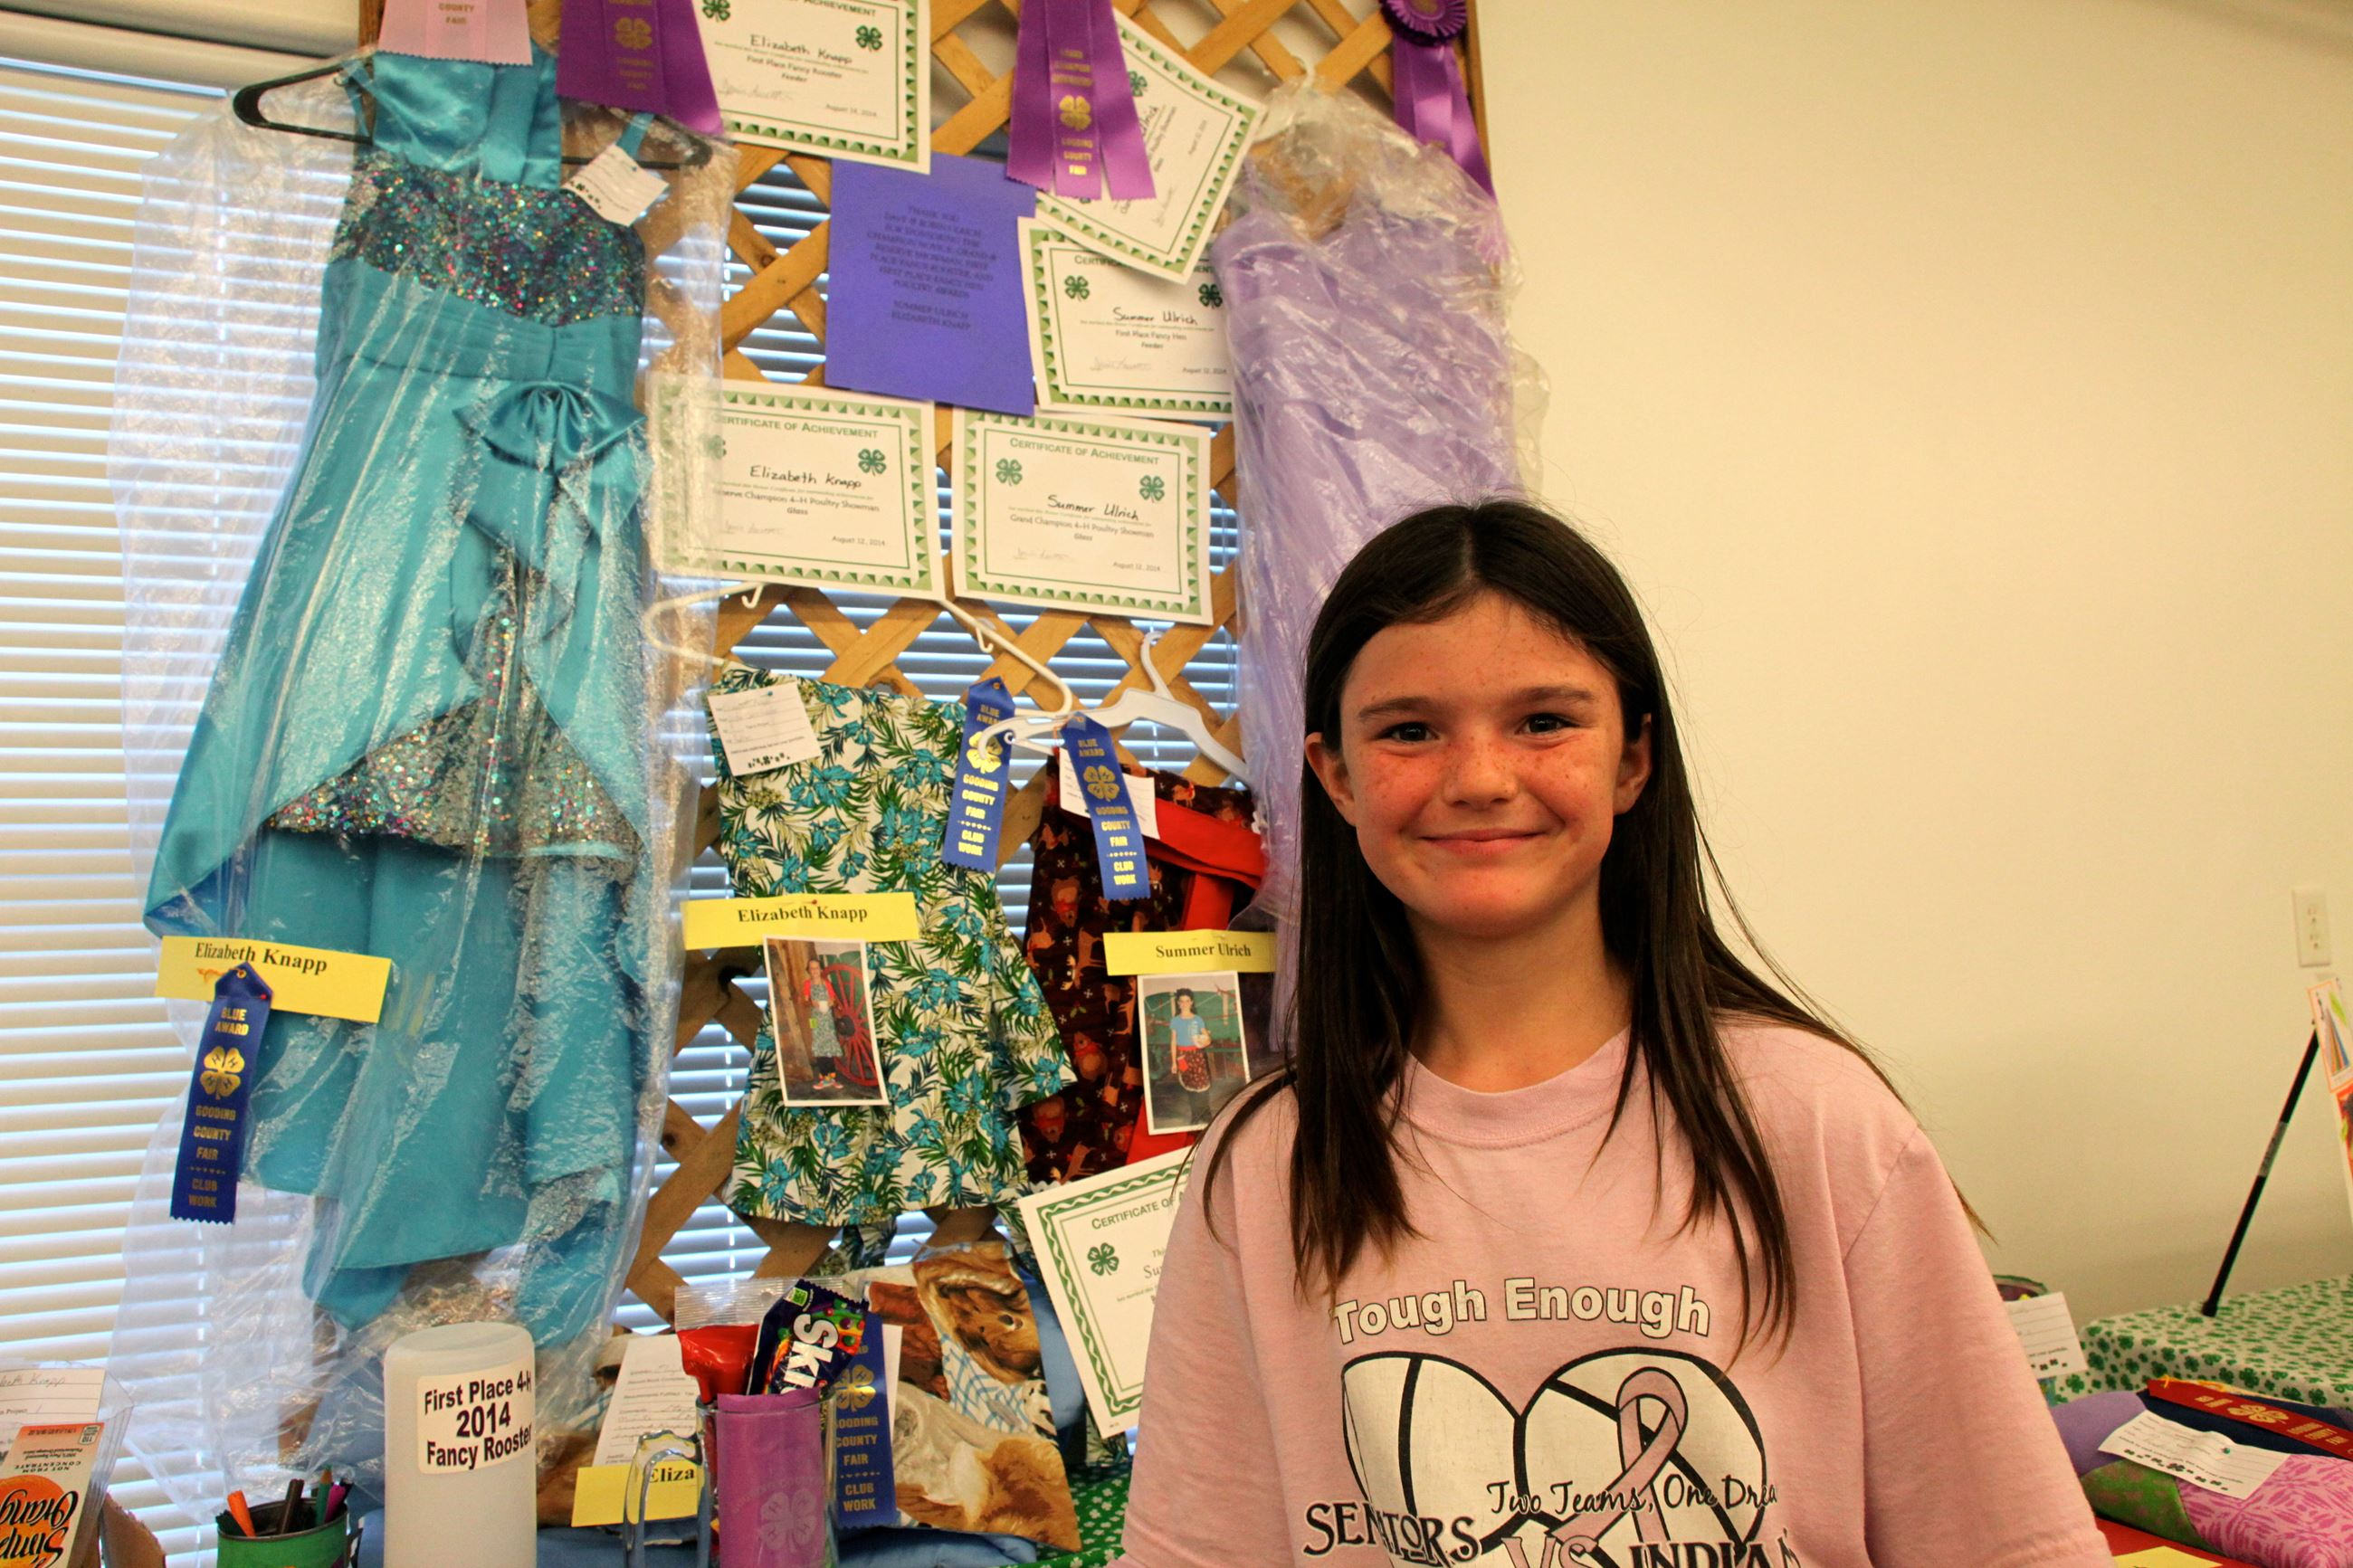 A 4-H member with her project display